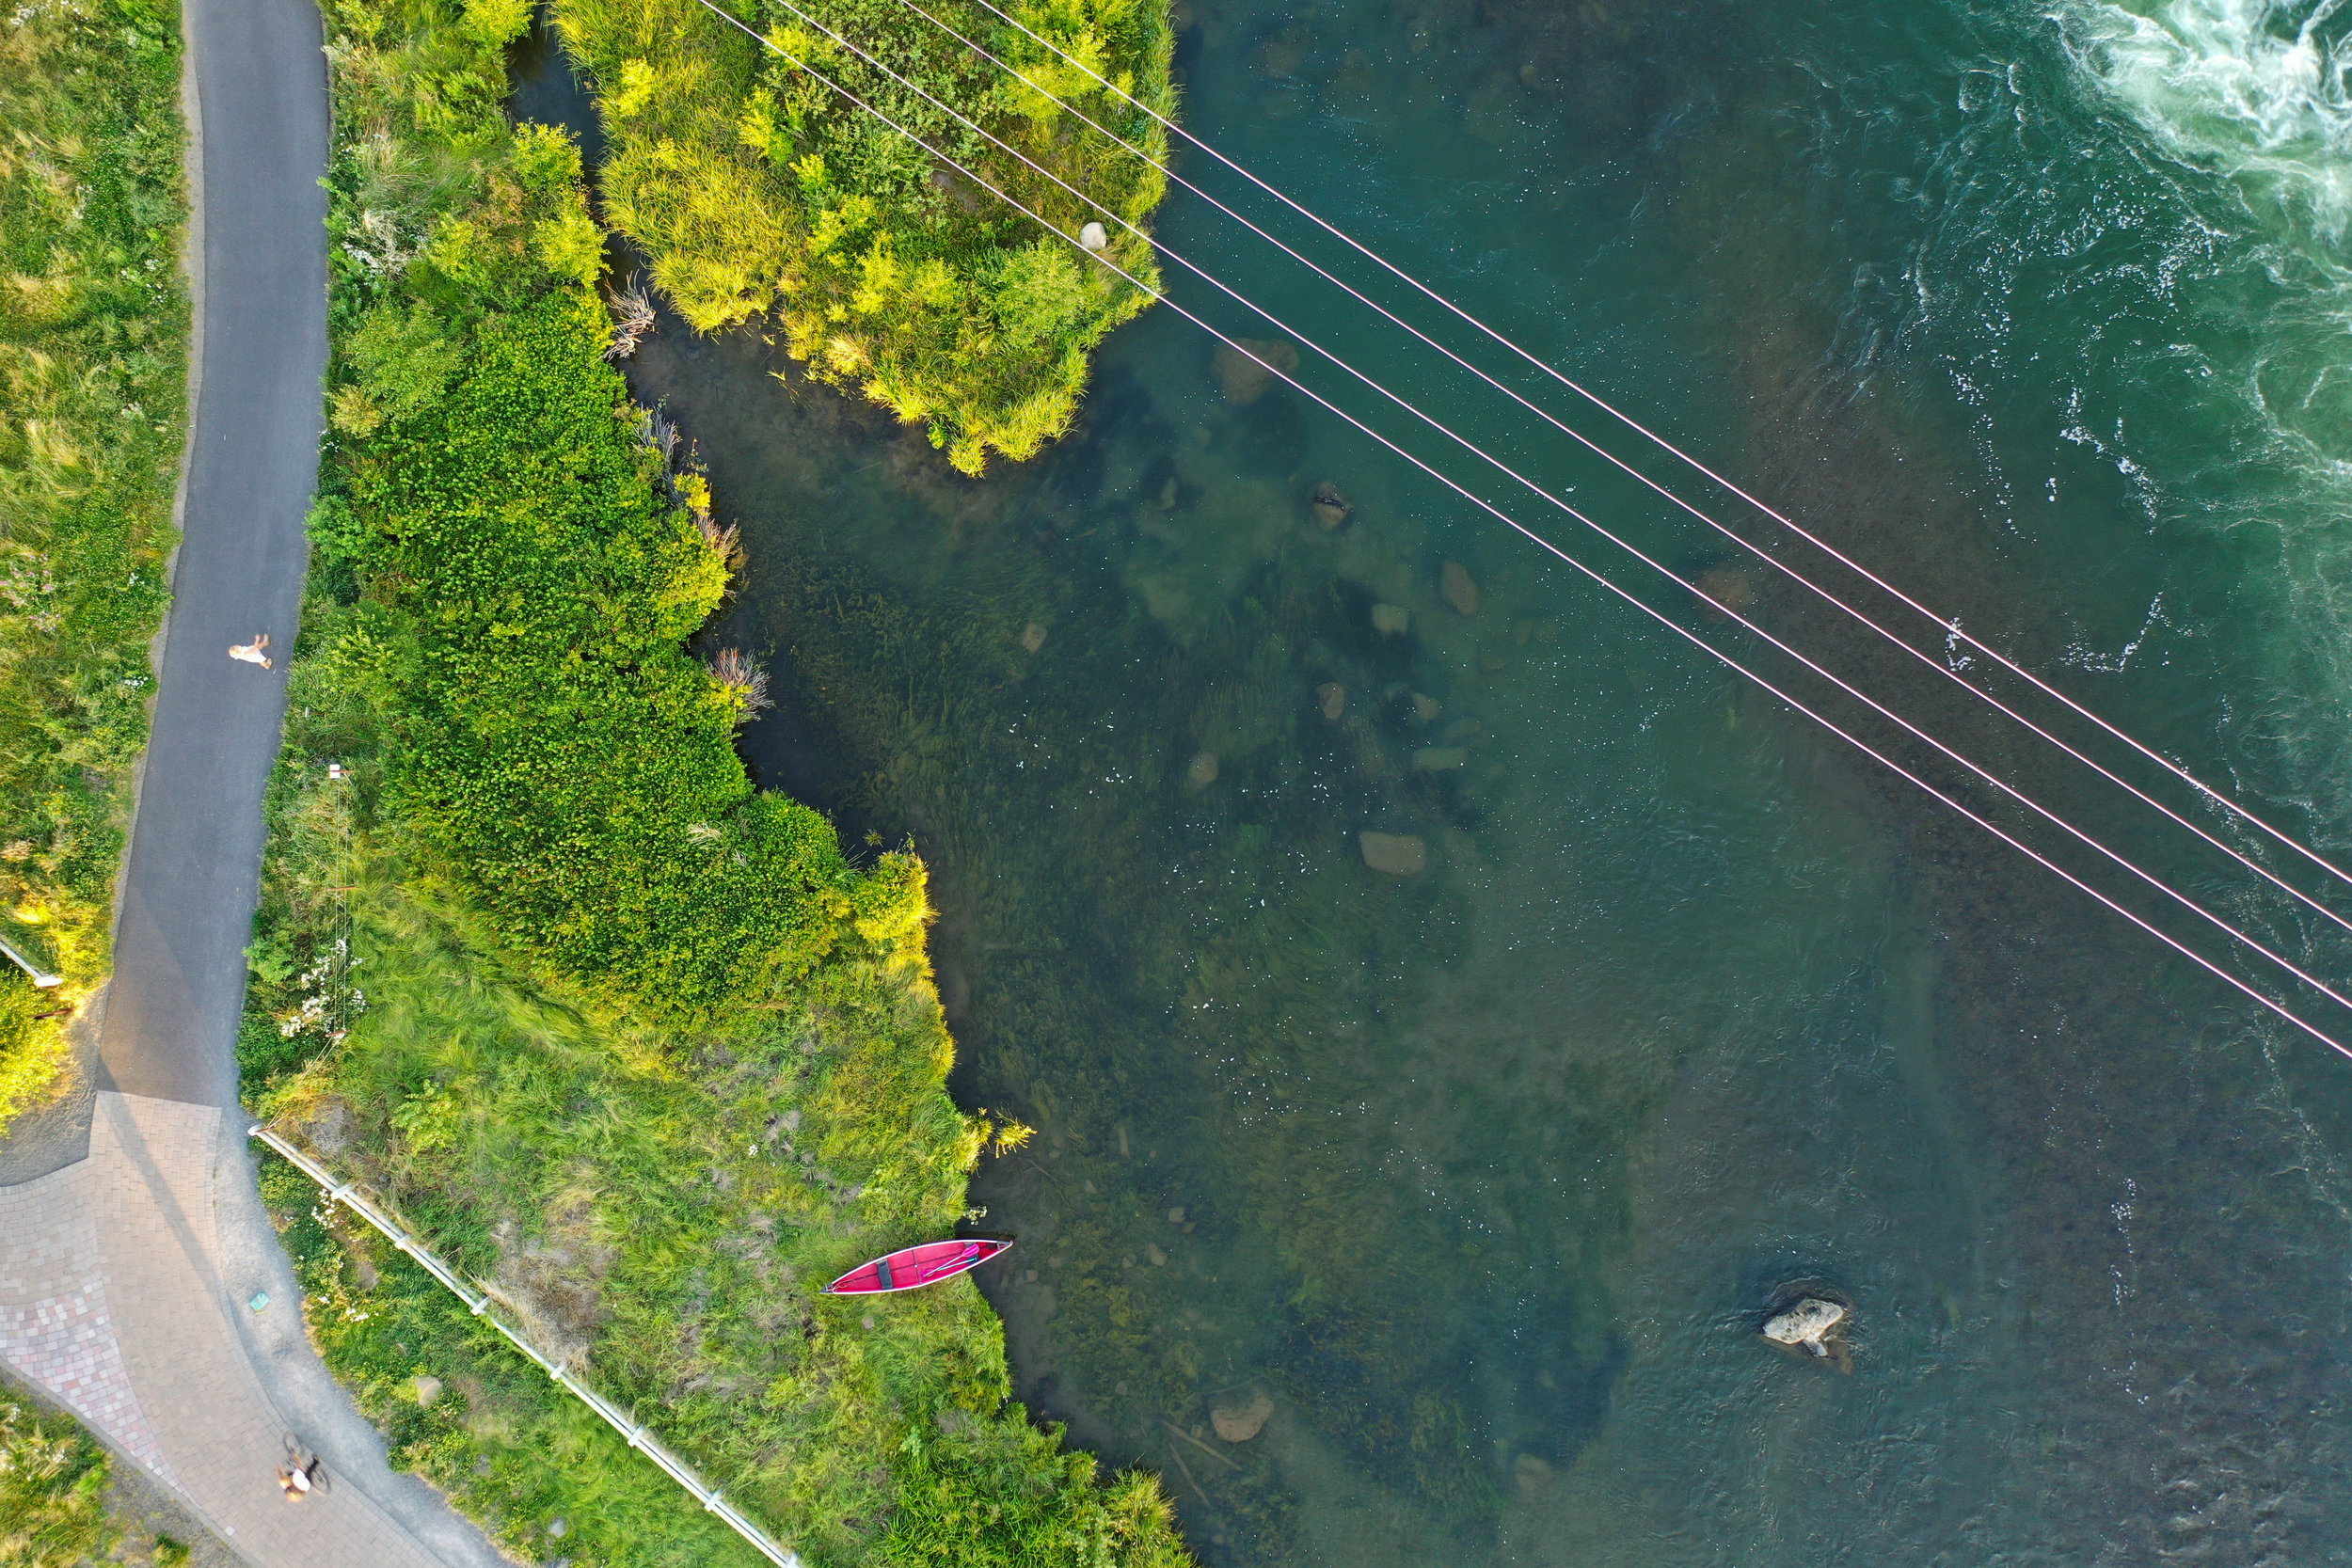 aerial view of a red kayak on the shore of a river